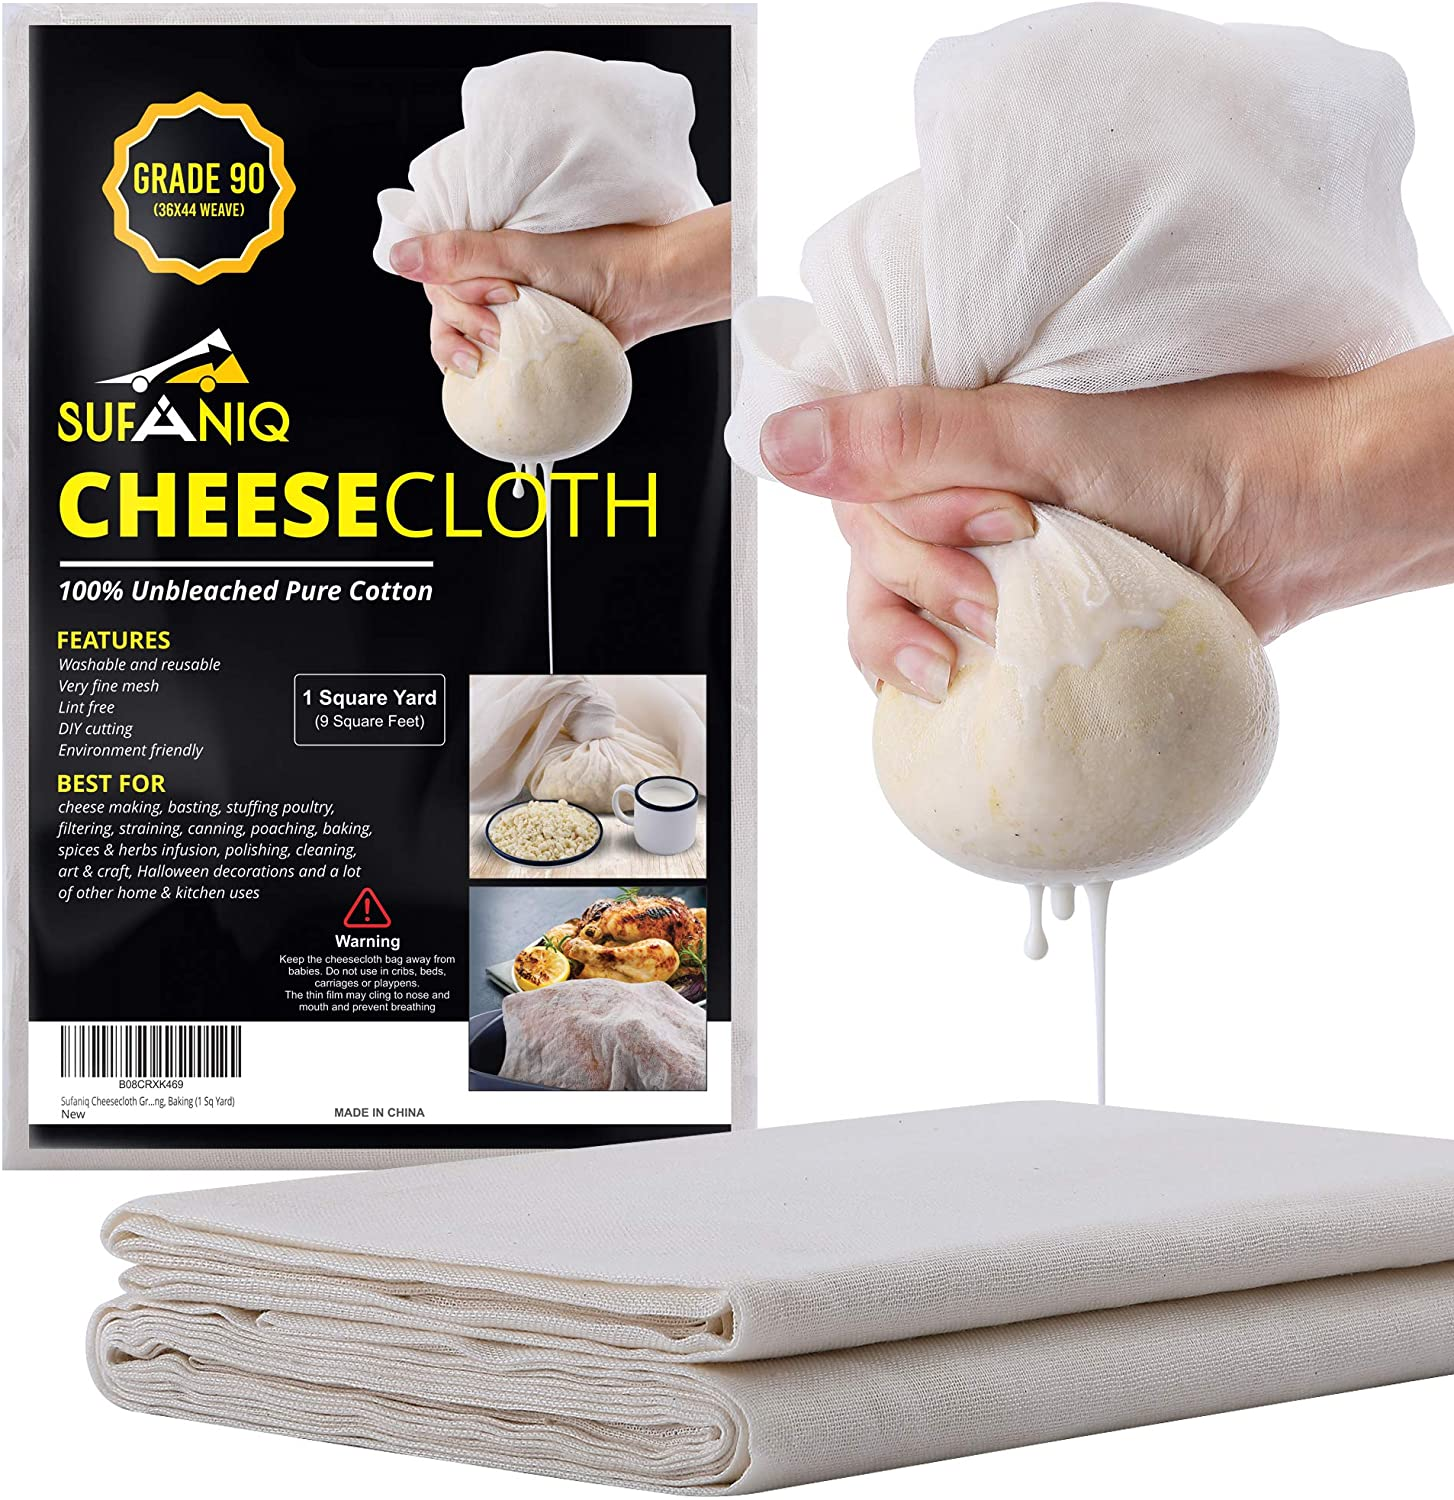 Sufaniq Cheesecloth Grade 90-9 Square Feet Unbleached 100% Cotton Fabric Ultra Fine Reusable Cheese Cloths for Cooking Straining Cheesemaking and Baking (1 Sq Yard)